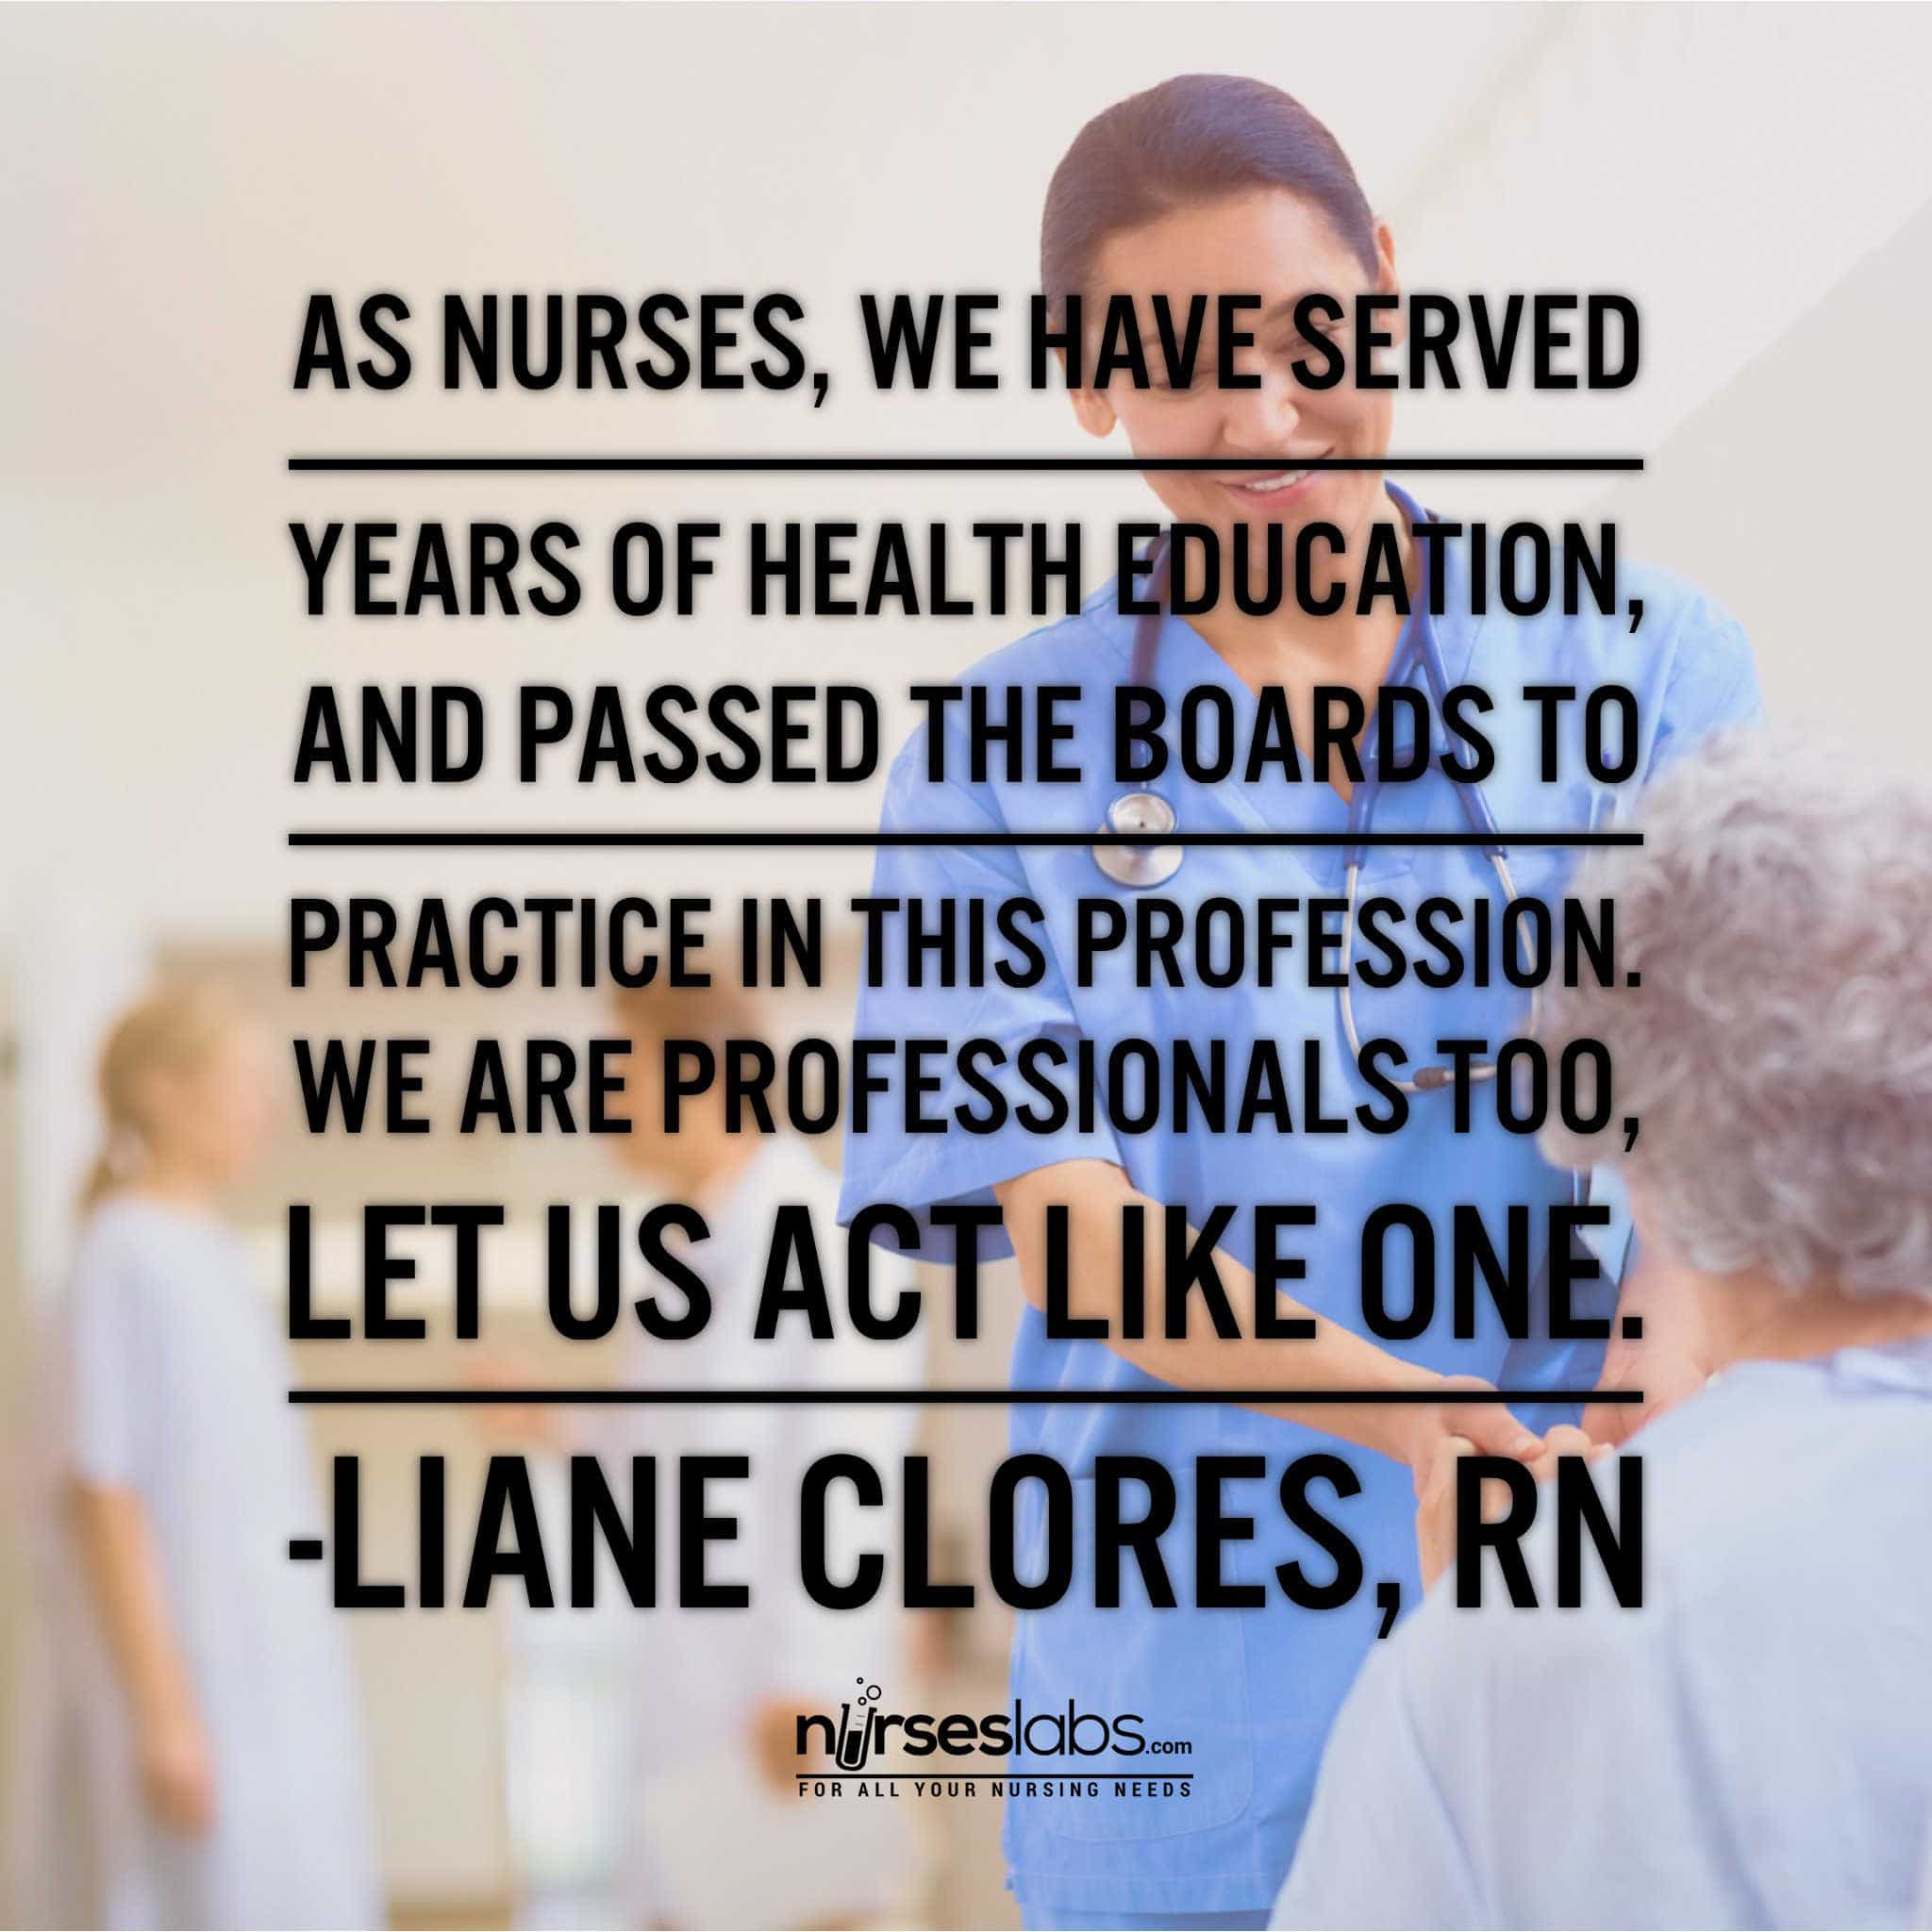 As nurses, we have served years of health education, and passed the boards to practice in this profession. We are professionals too, let us act like one. - Liane Clores, RN